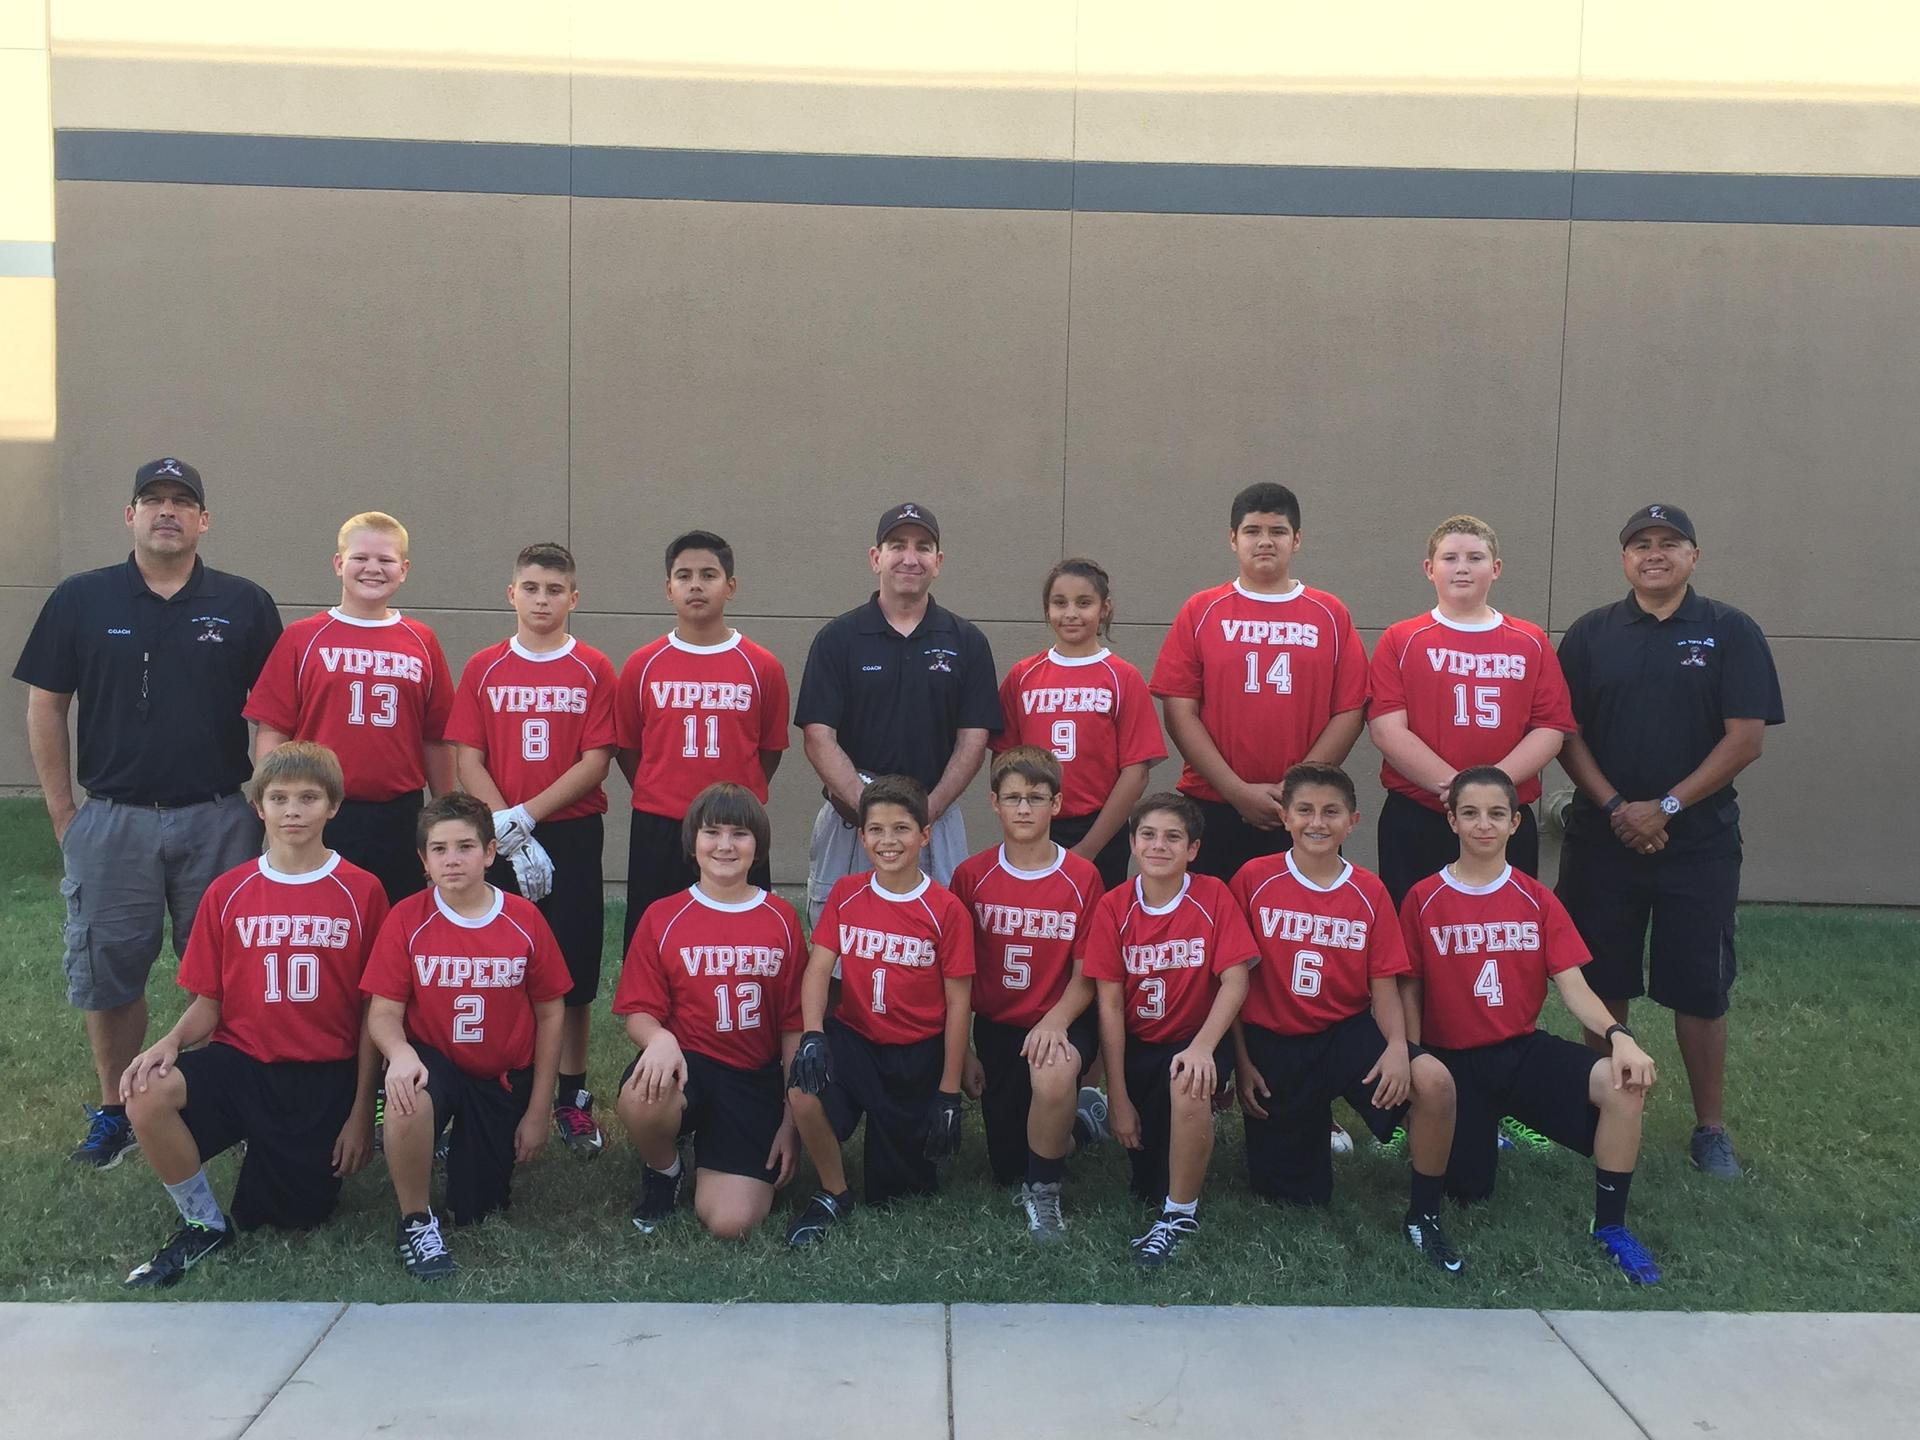 2015 Vipers Football